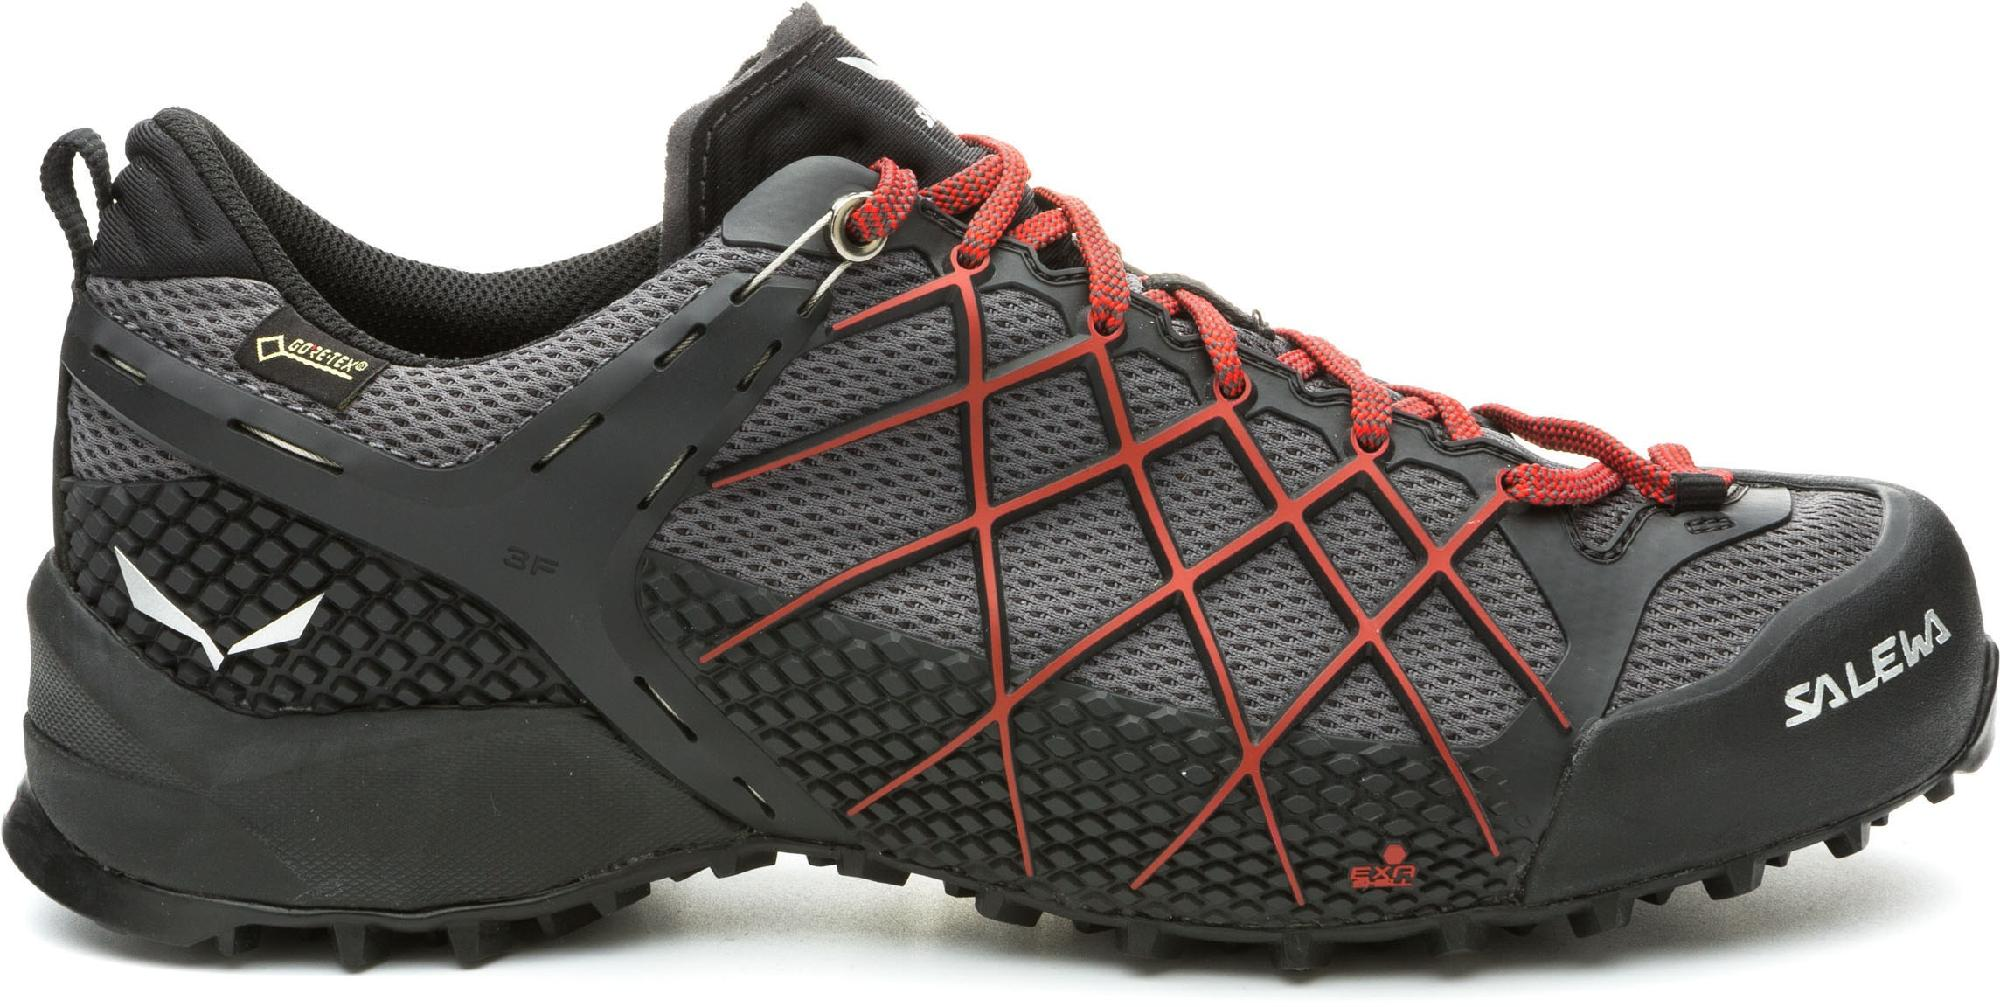 Salewa Wildfire GTX Approach Shoes - Men's